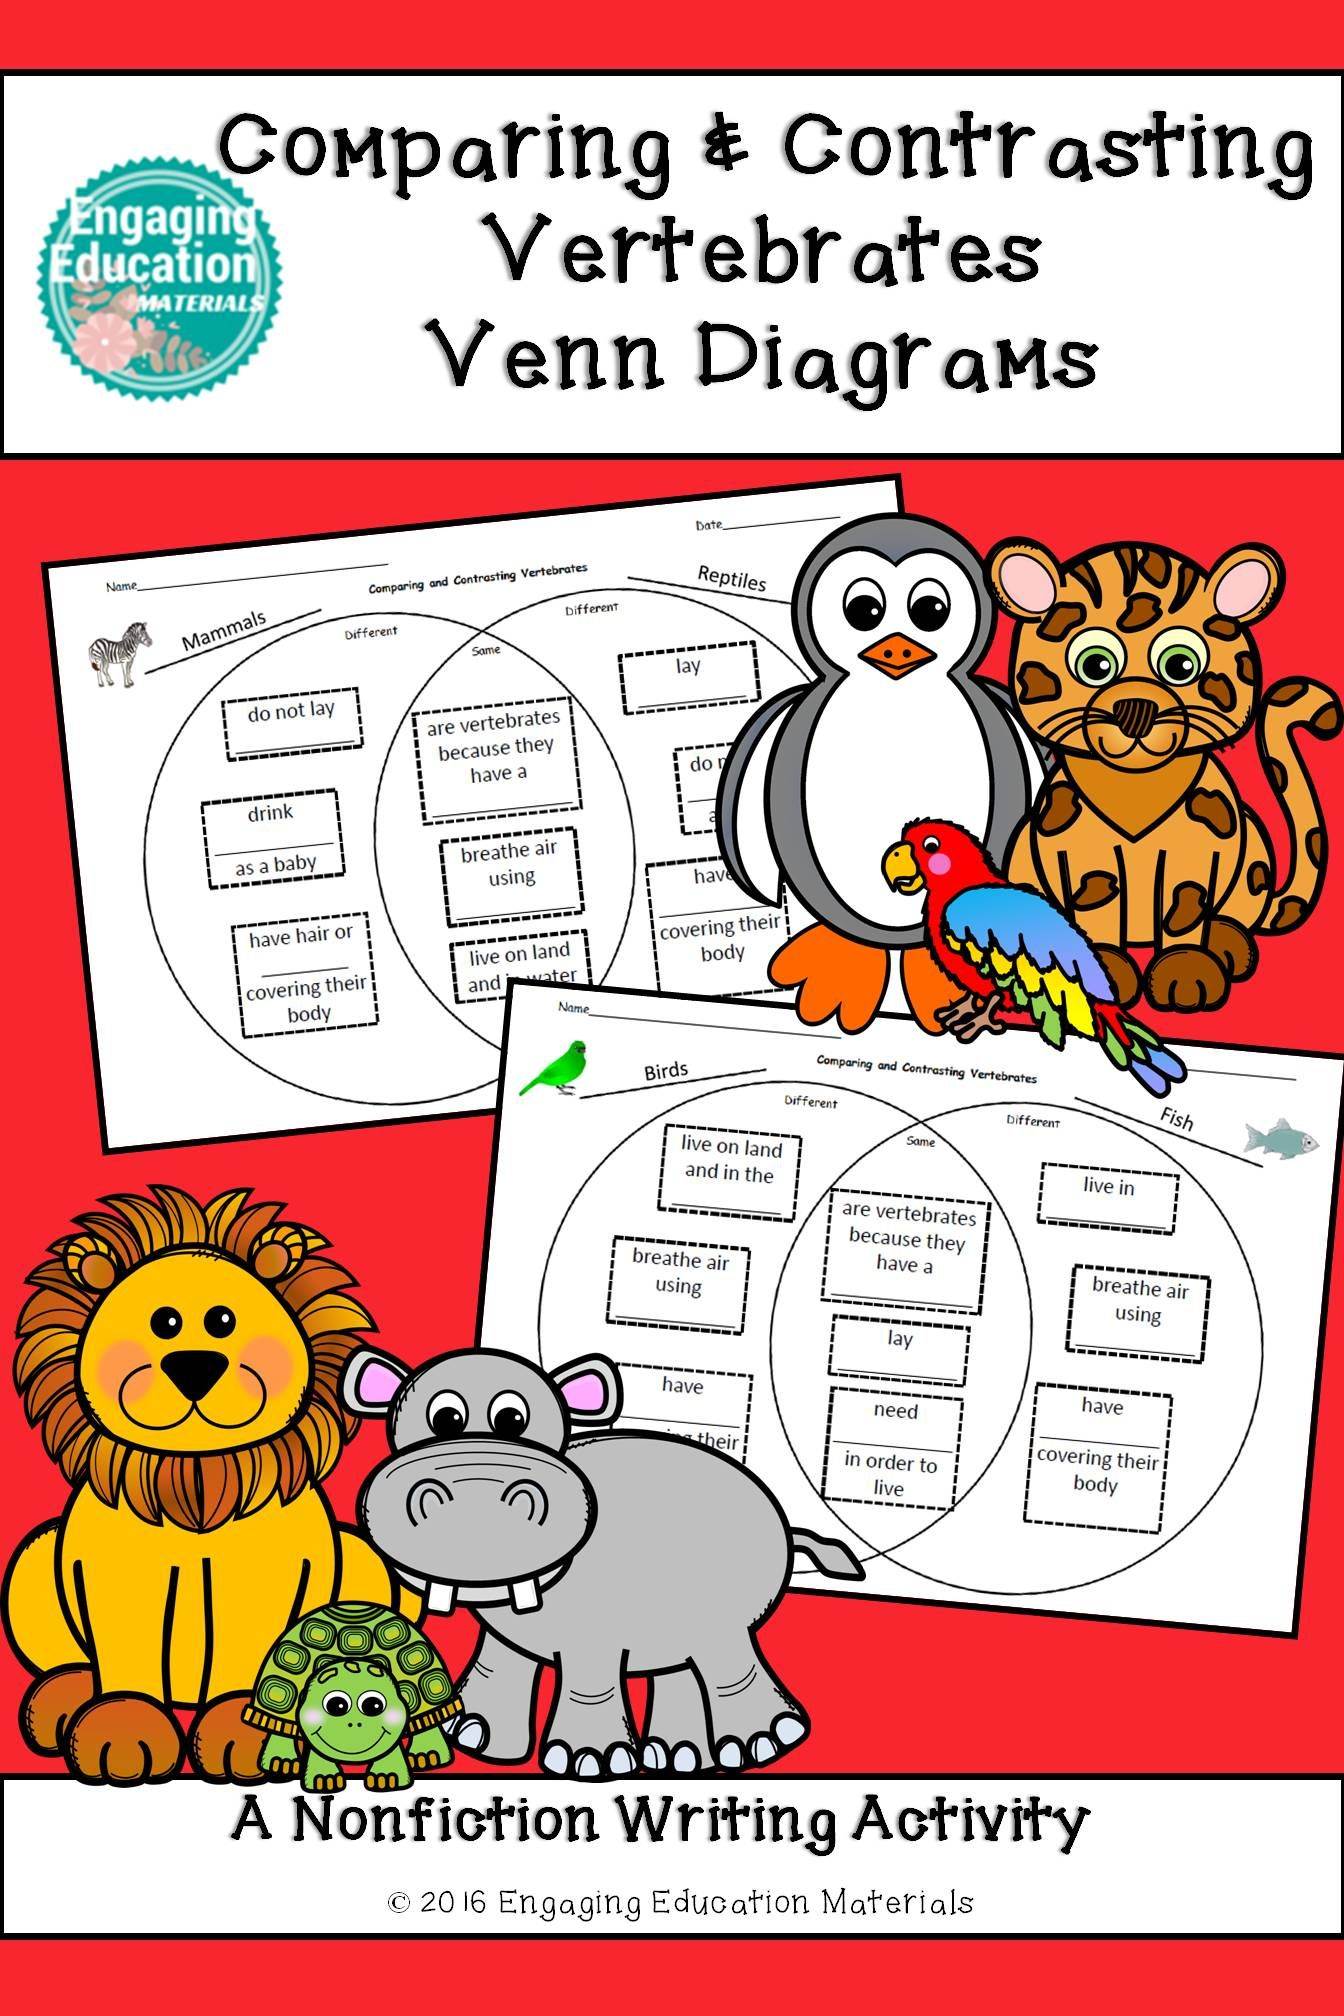 First Amp Second Grade Venn Diagrams To Compare And Contrast